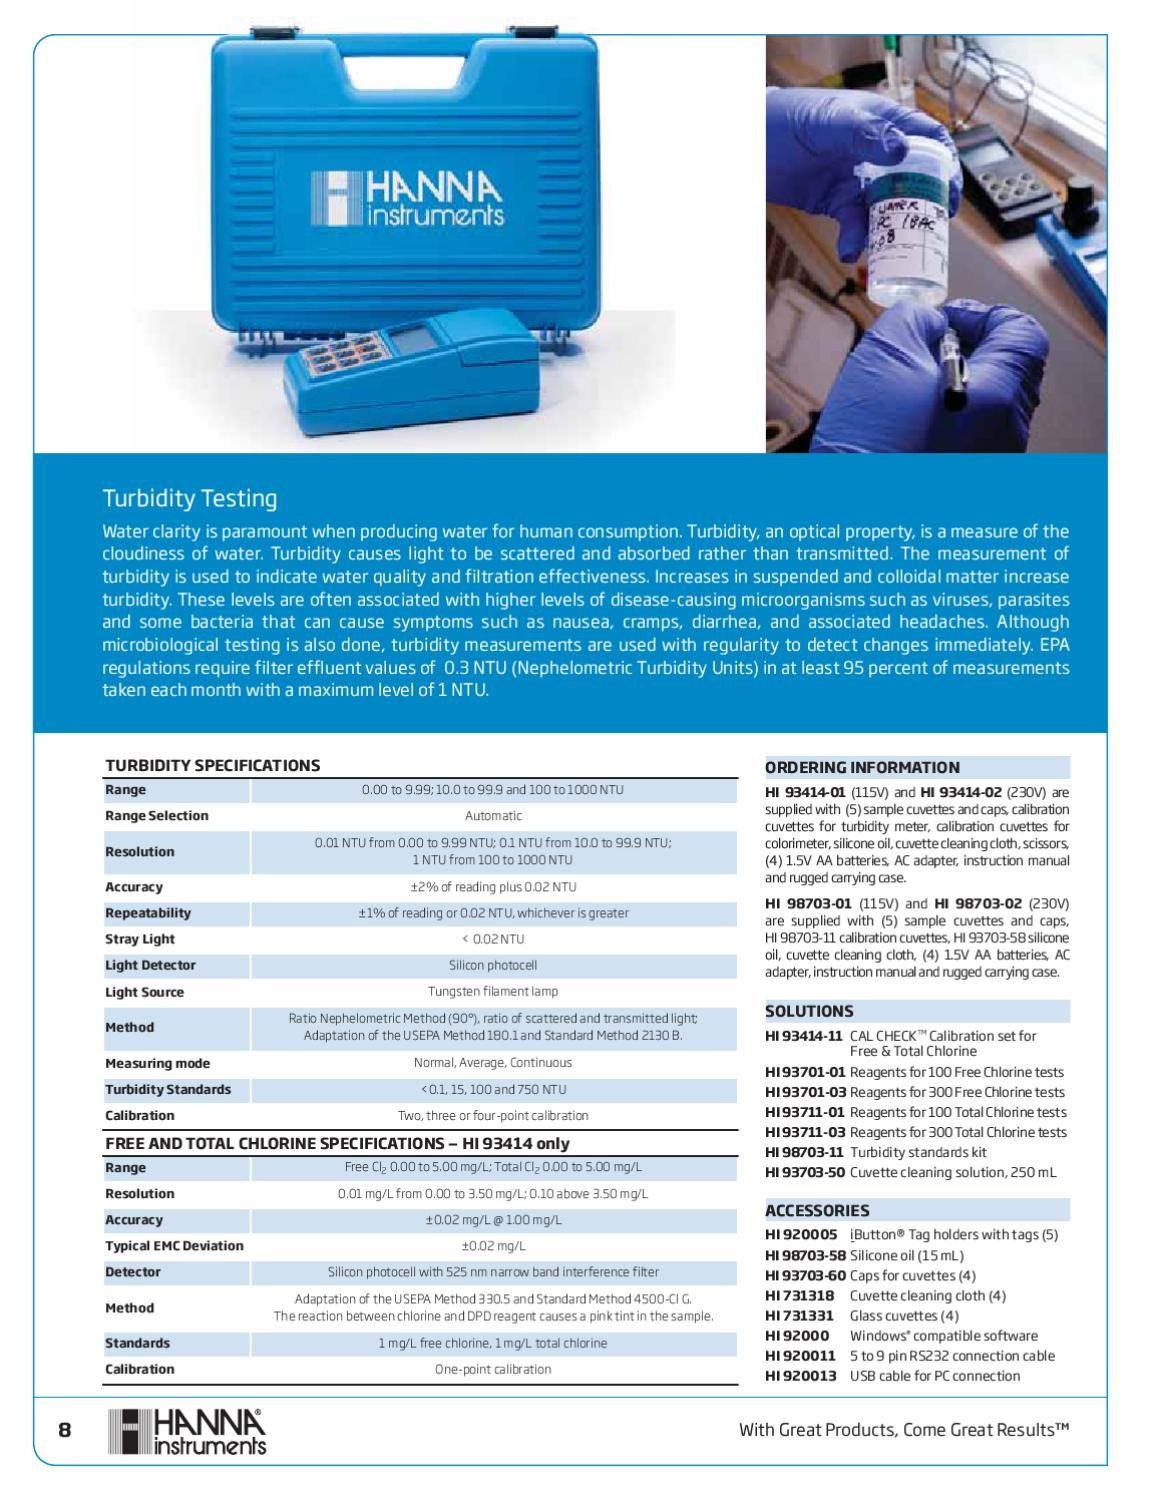 Hanna Instruments Drinking Water Catalog by Aqua Technology Group